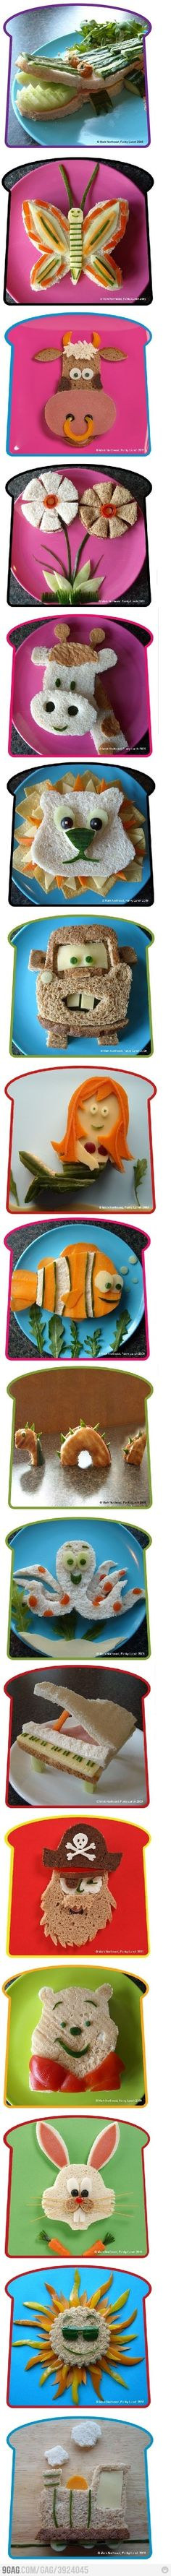 Have fun with your food sandwich art!